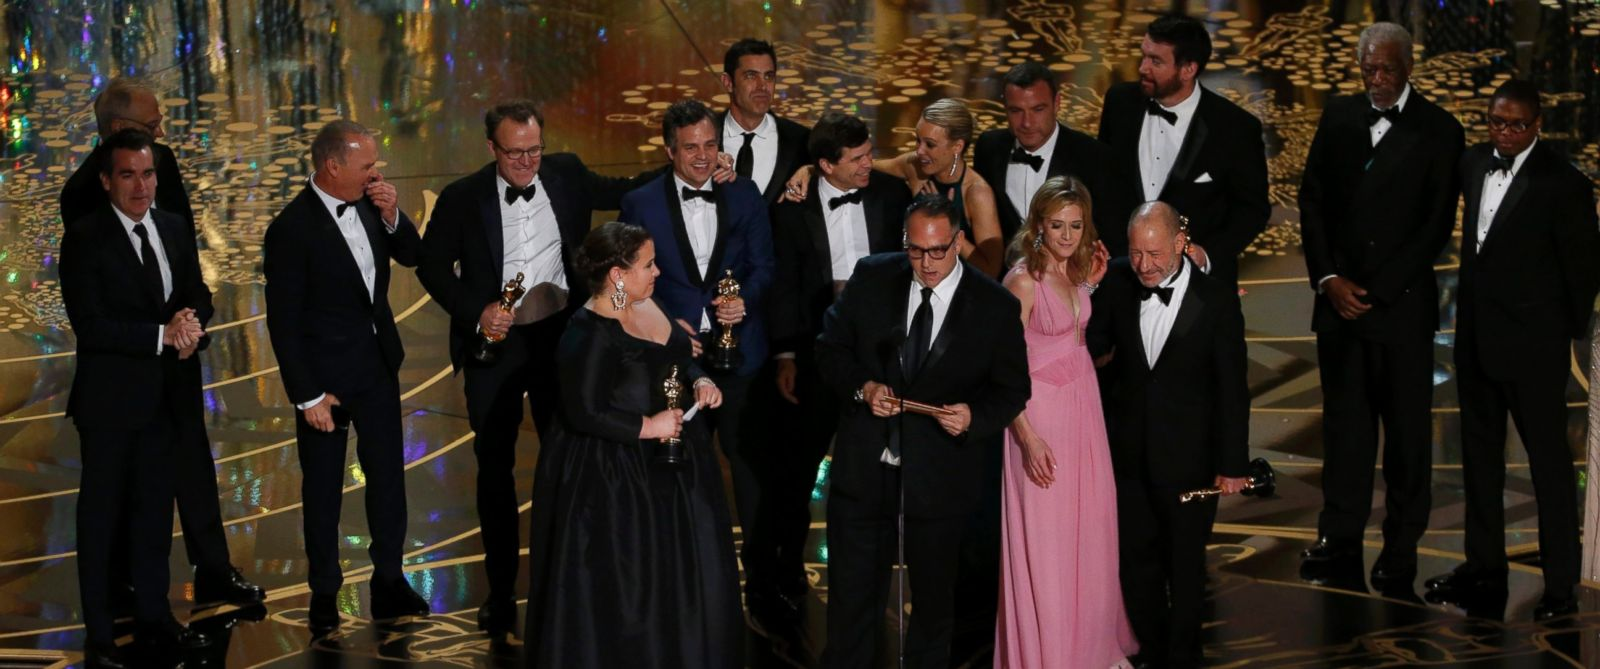 """PHOTO:Producer Michael Sugar accepts the Oscar for Best Picture for his film """"Spotlight"""" with his fellow producers and cast at the 88th Academy Awards in Hollywood, Calif., Feb. 28, 2016."""